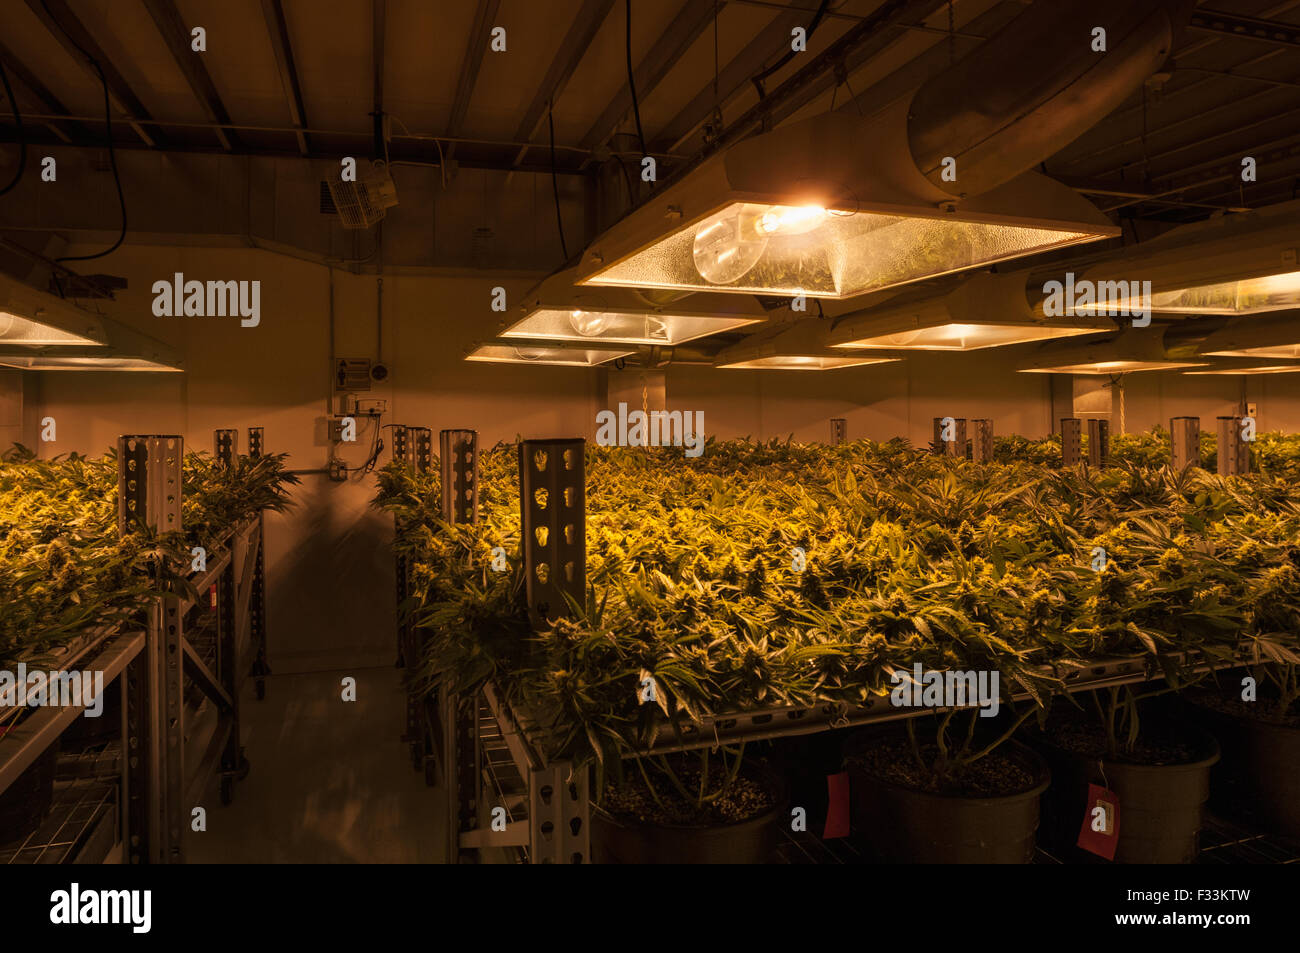 Cannabis Plants Carefully Grown For Marijuana Dispensary Pueblo Co